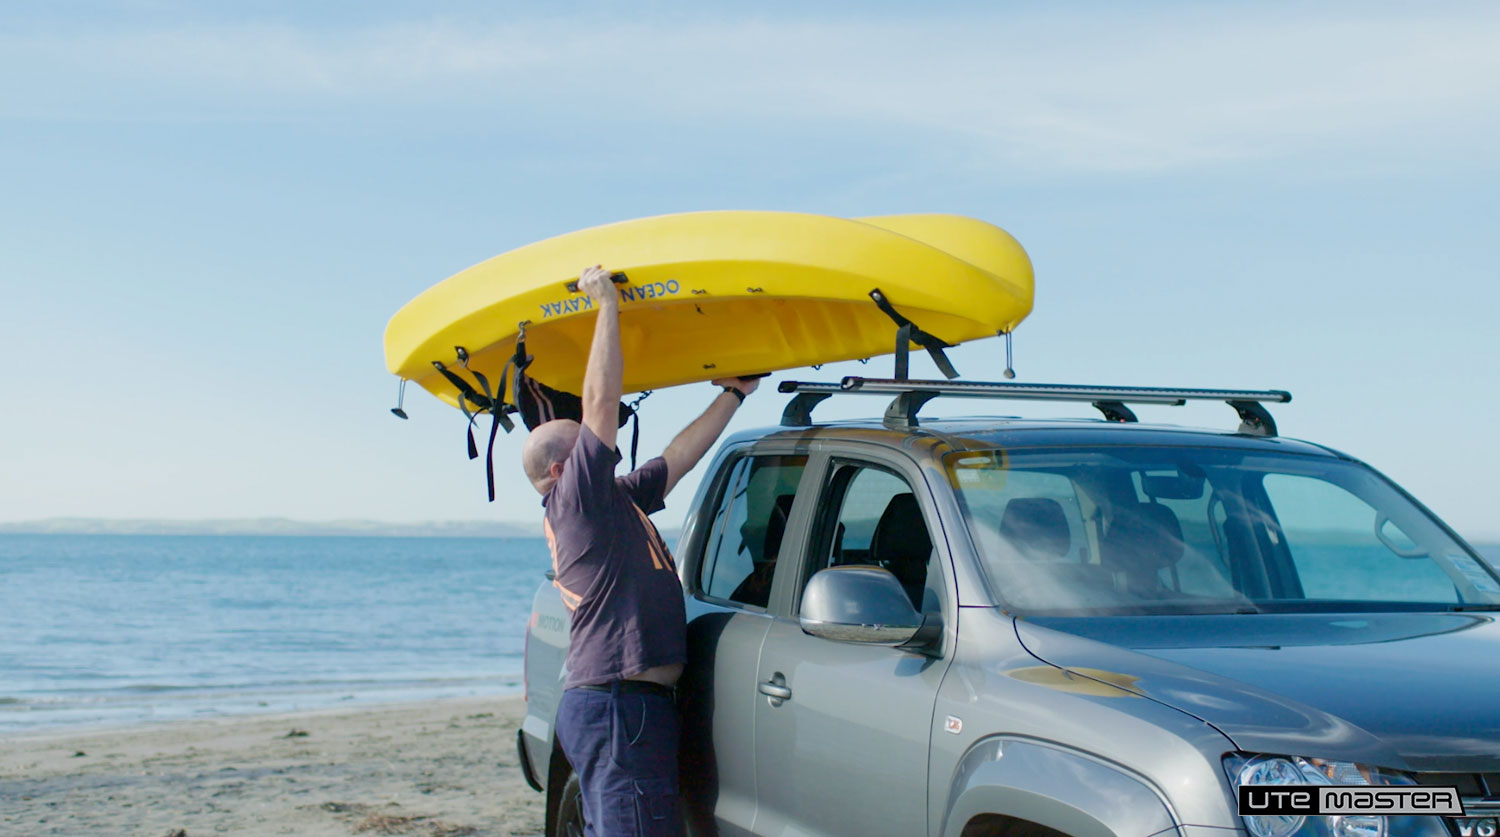 Back Injury Kayak Dropracks by Utemaster Roof Racks Lowerable Roof Access